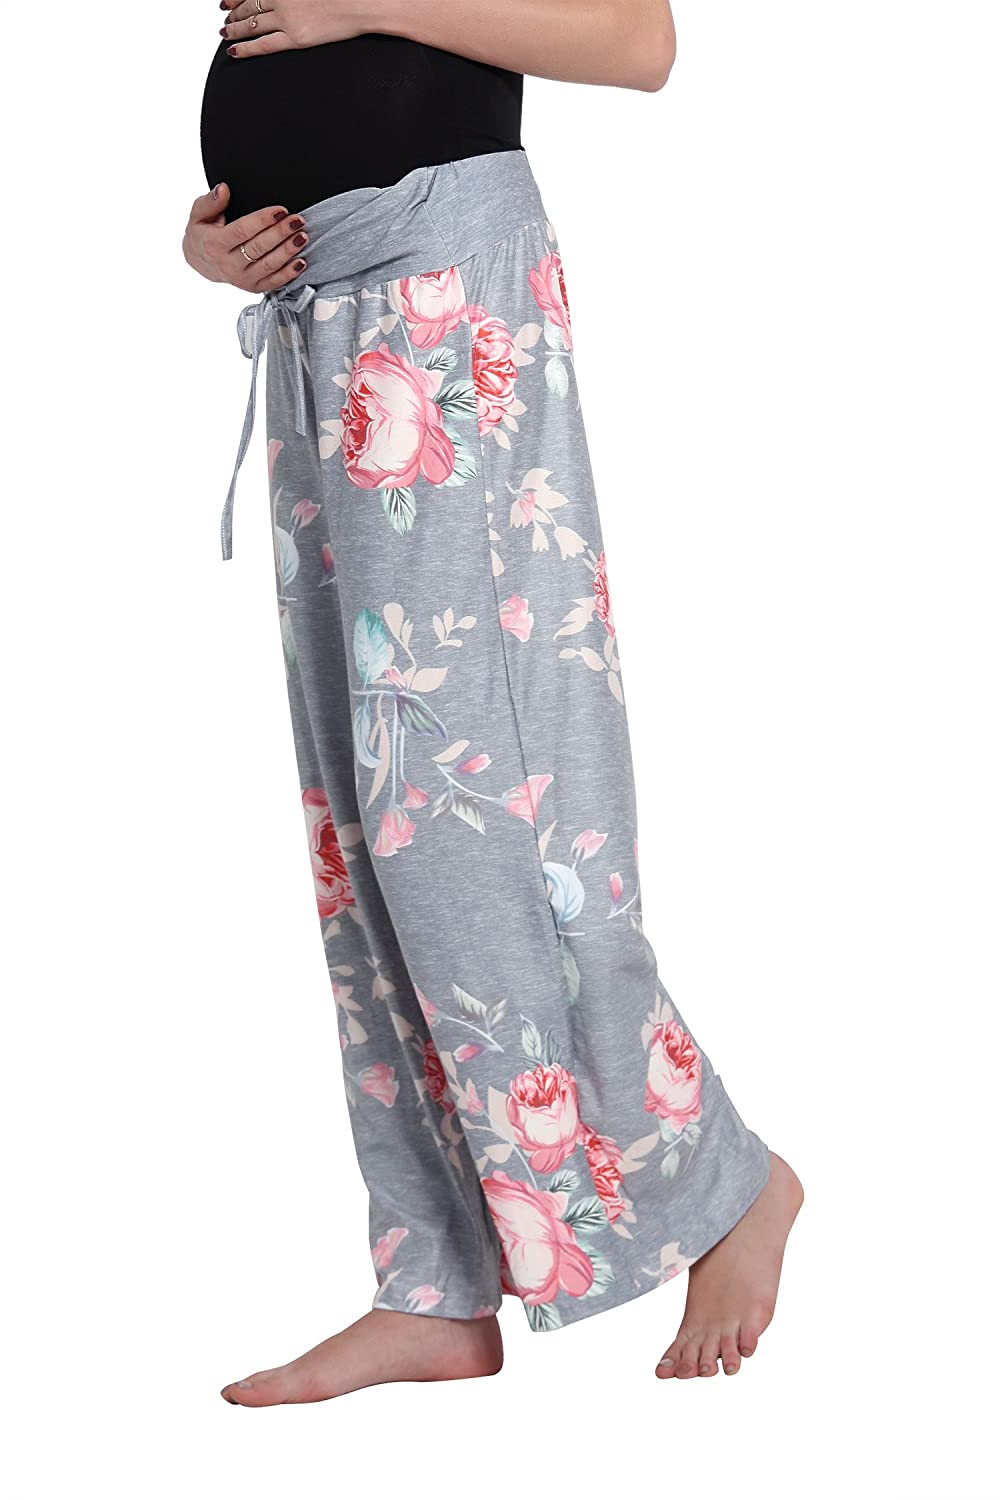 e55a82df4d4 Molliya Maternity Casual Pajama Wide Leg Pants Floral Prints Drawstring  Palazzo Womens Lounge Pants Plus Size larger image